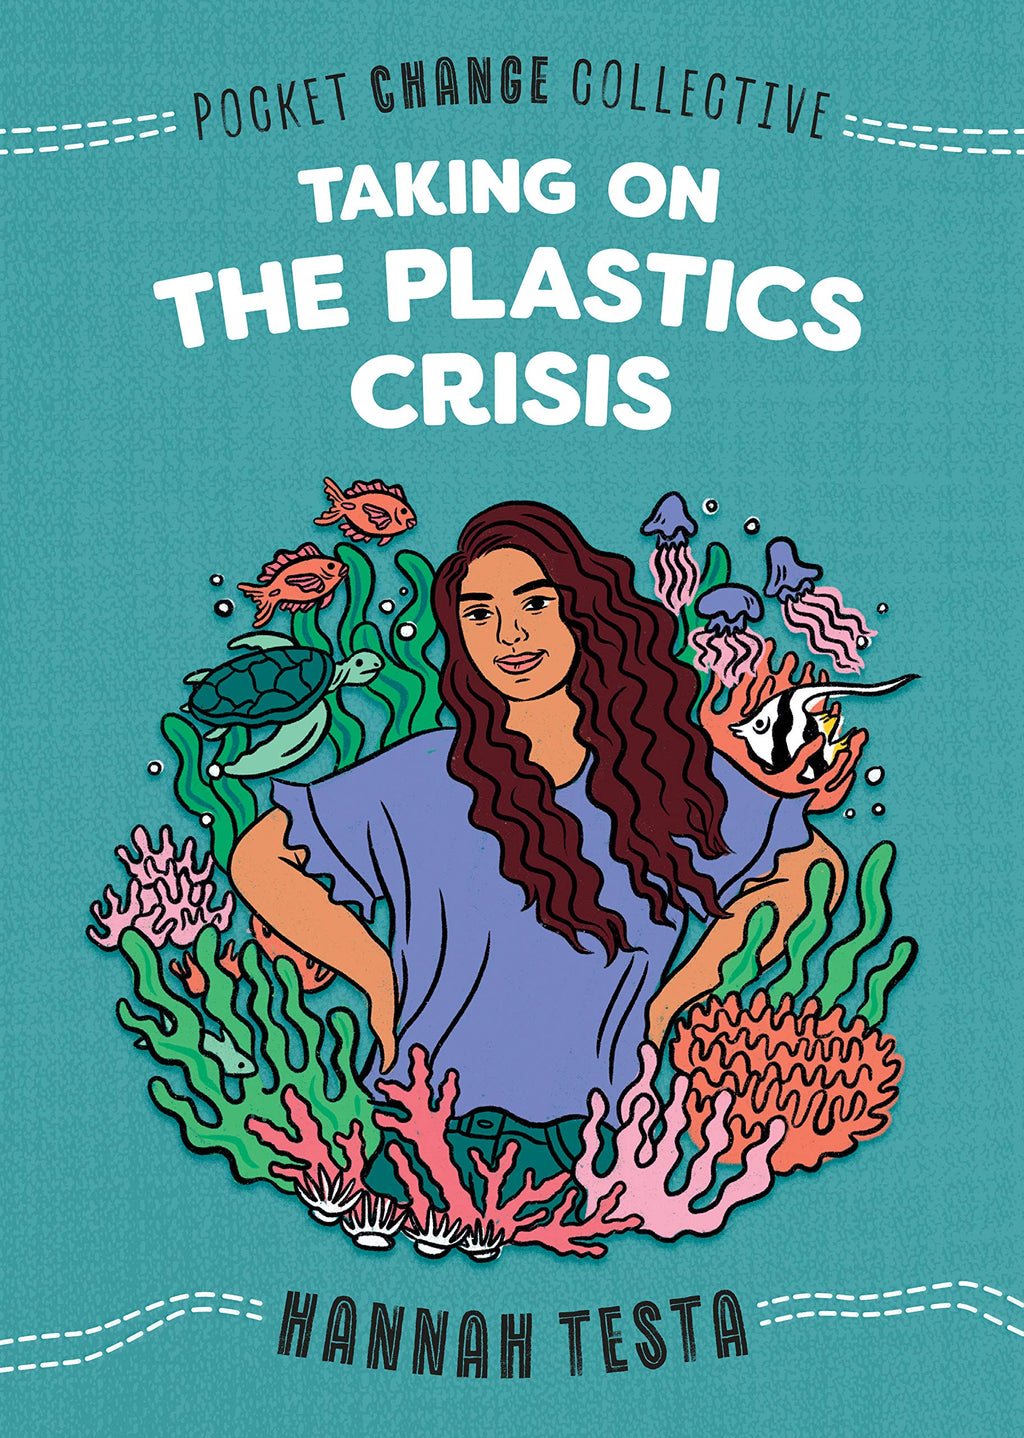 In this personal, moving essay, about eco activism, youth activist Hannah Testa shares with readers how she led a grassroots political campaign to successfully pass state legislation limiting single-use plastics and how she influenced global businesses to adopt more sustainable practices.